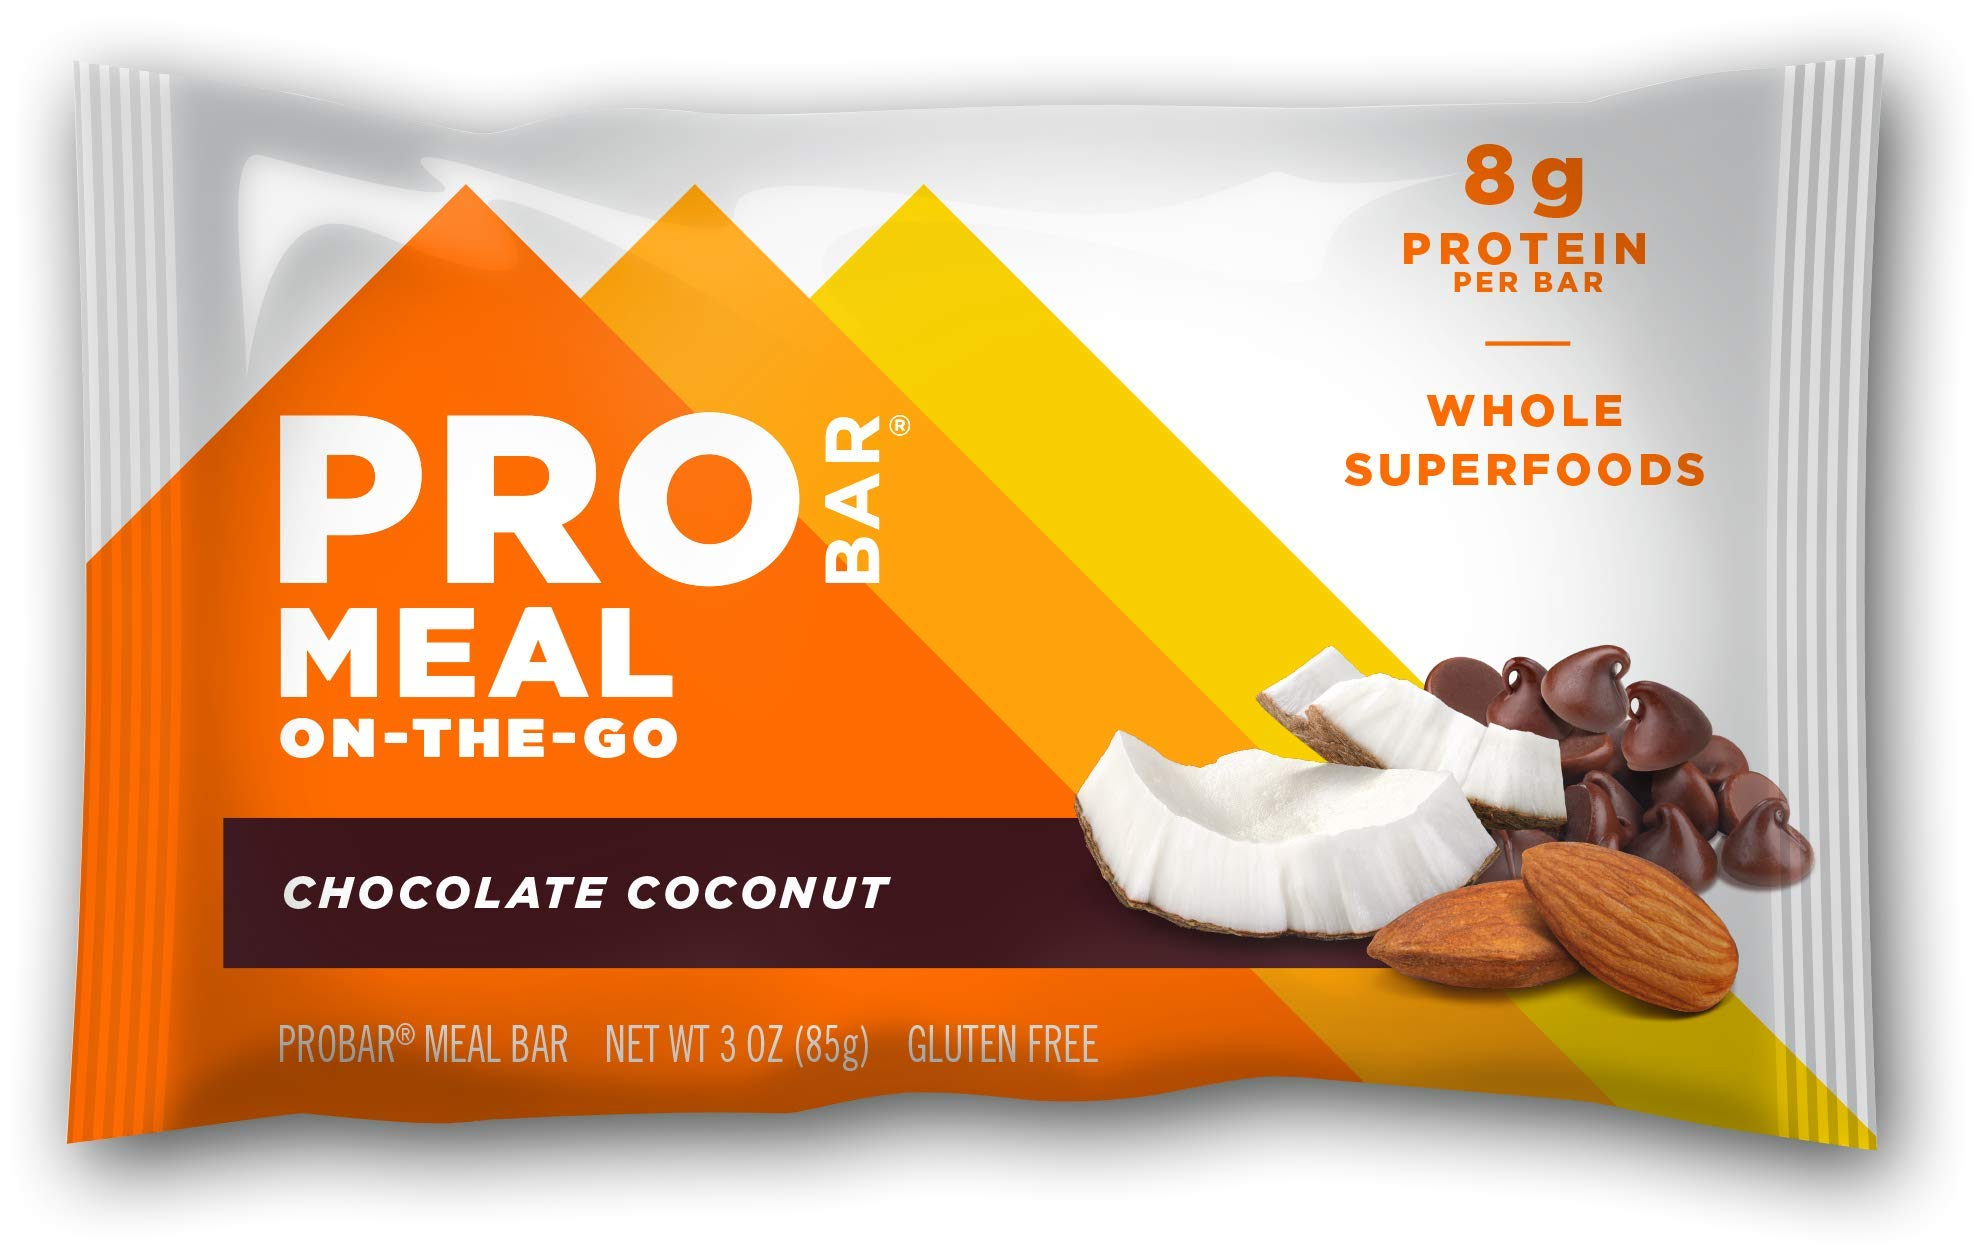 PROBAR - Meal Bar, Chocolate Coconut, Non-GMO, Gluten-Free, Certified Organic, Healthy, Plant-Based Whole Food Ingredients, Natural Energy (6 Count)